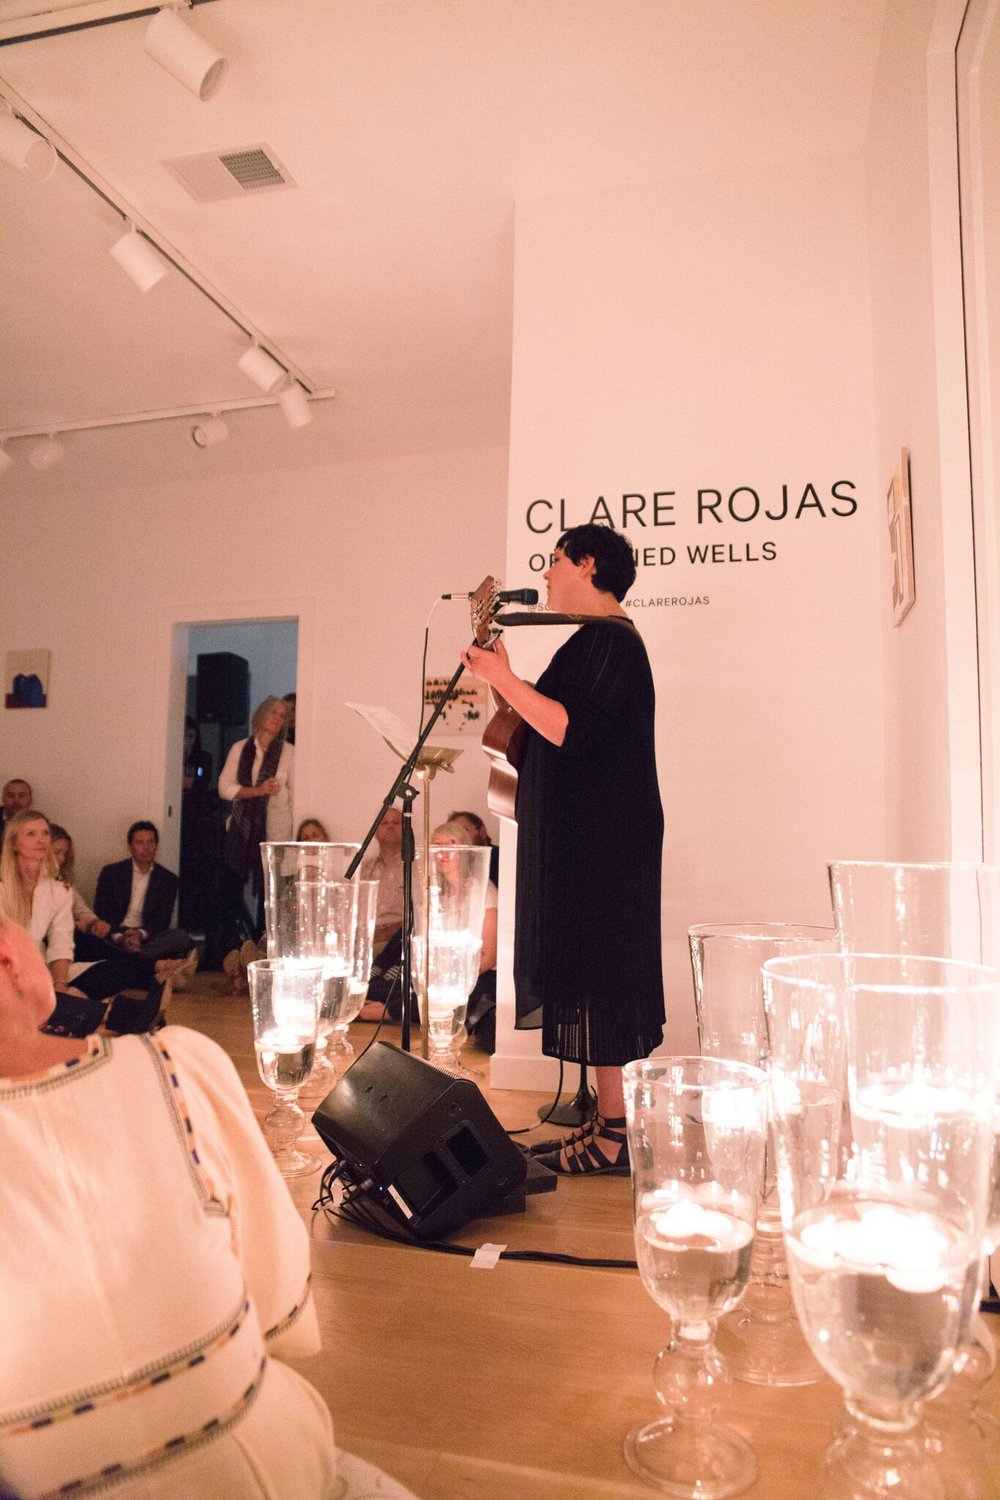 Peggy Honeywell plays an intimate set for an enamored audience at Soco Gallery.  Photo courtesy of Ariana Clare (www.arianaclare.com)